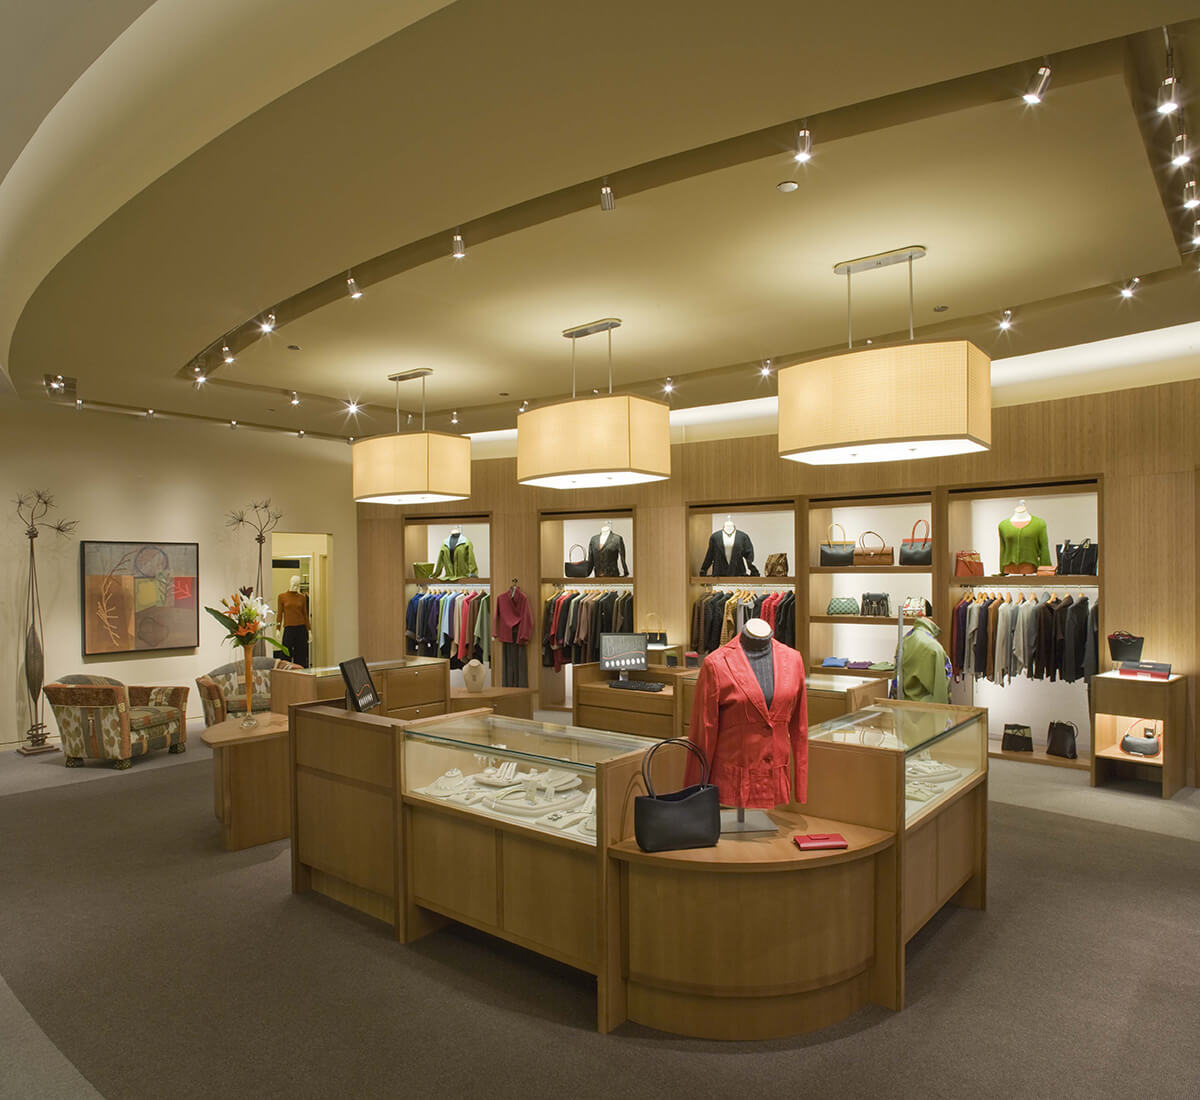 Bellagio Everyday retail store architectural renovation project